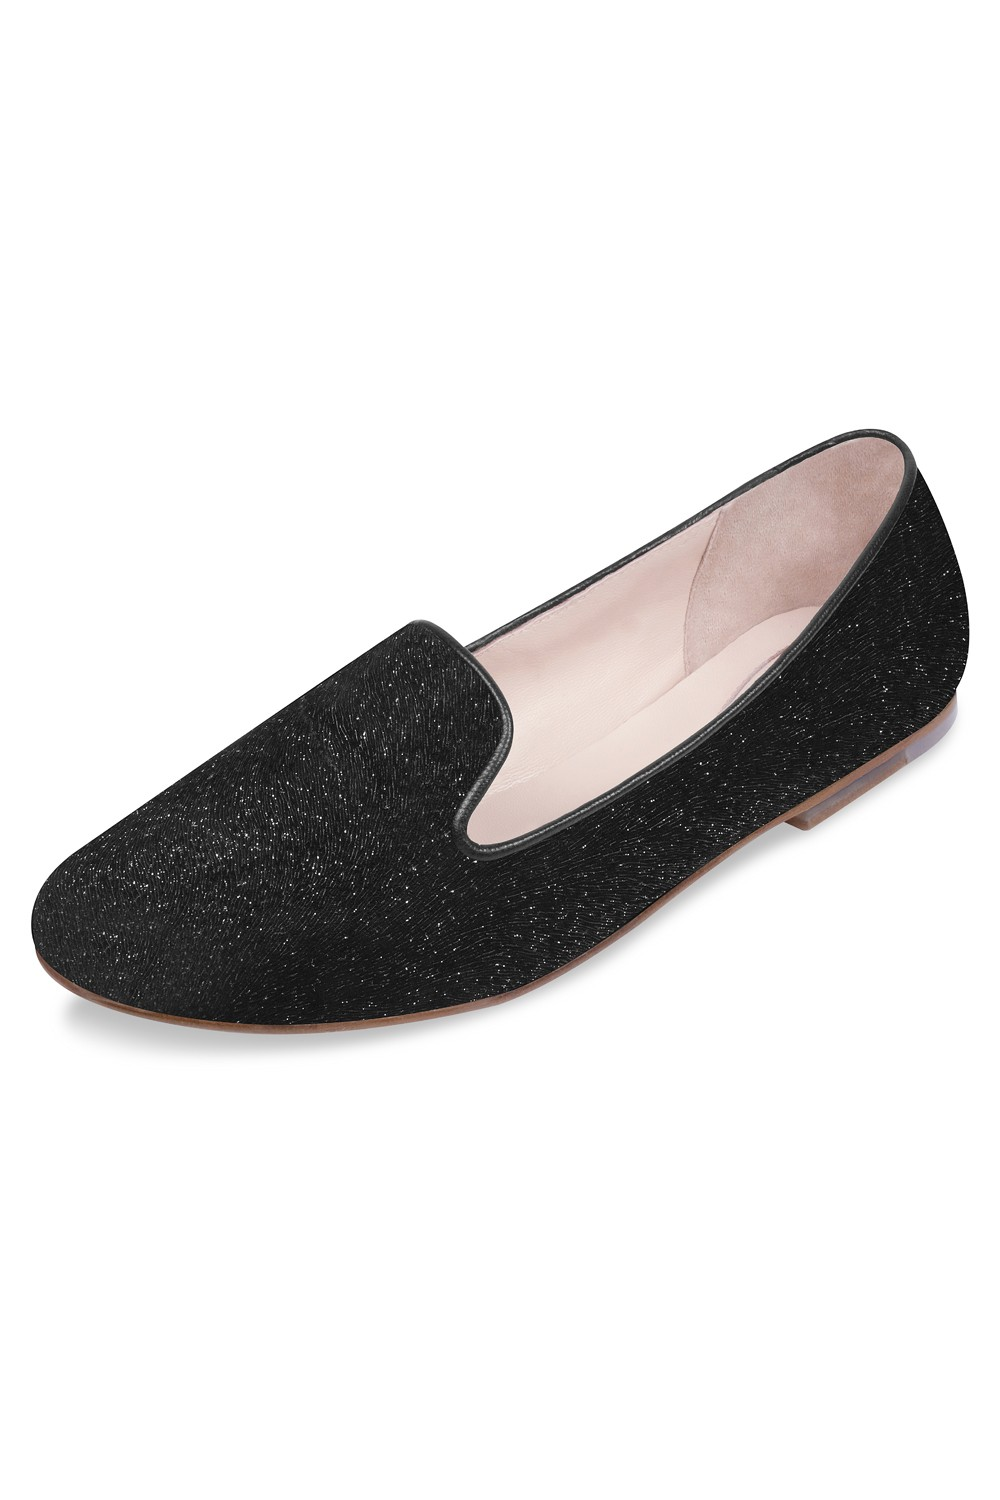 Daphne Ladies Ballet Flat Womens Fashion Shoes